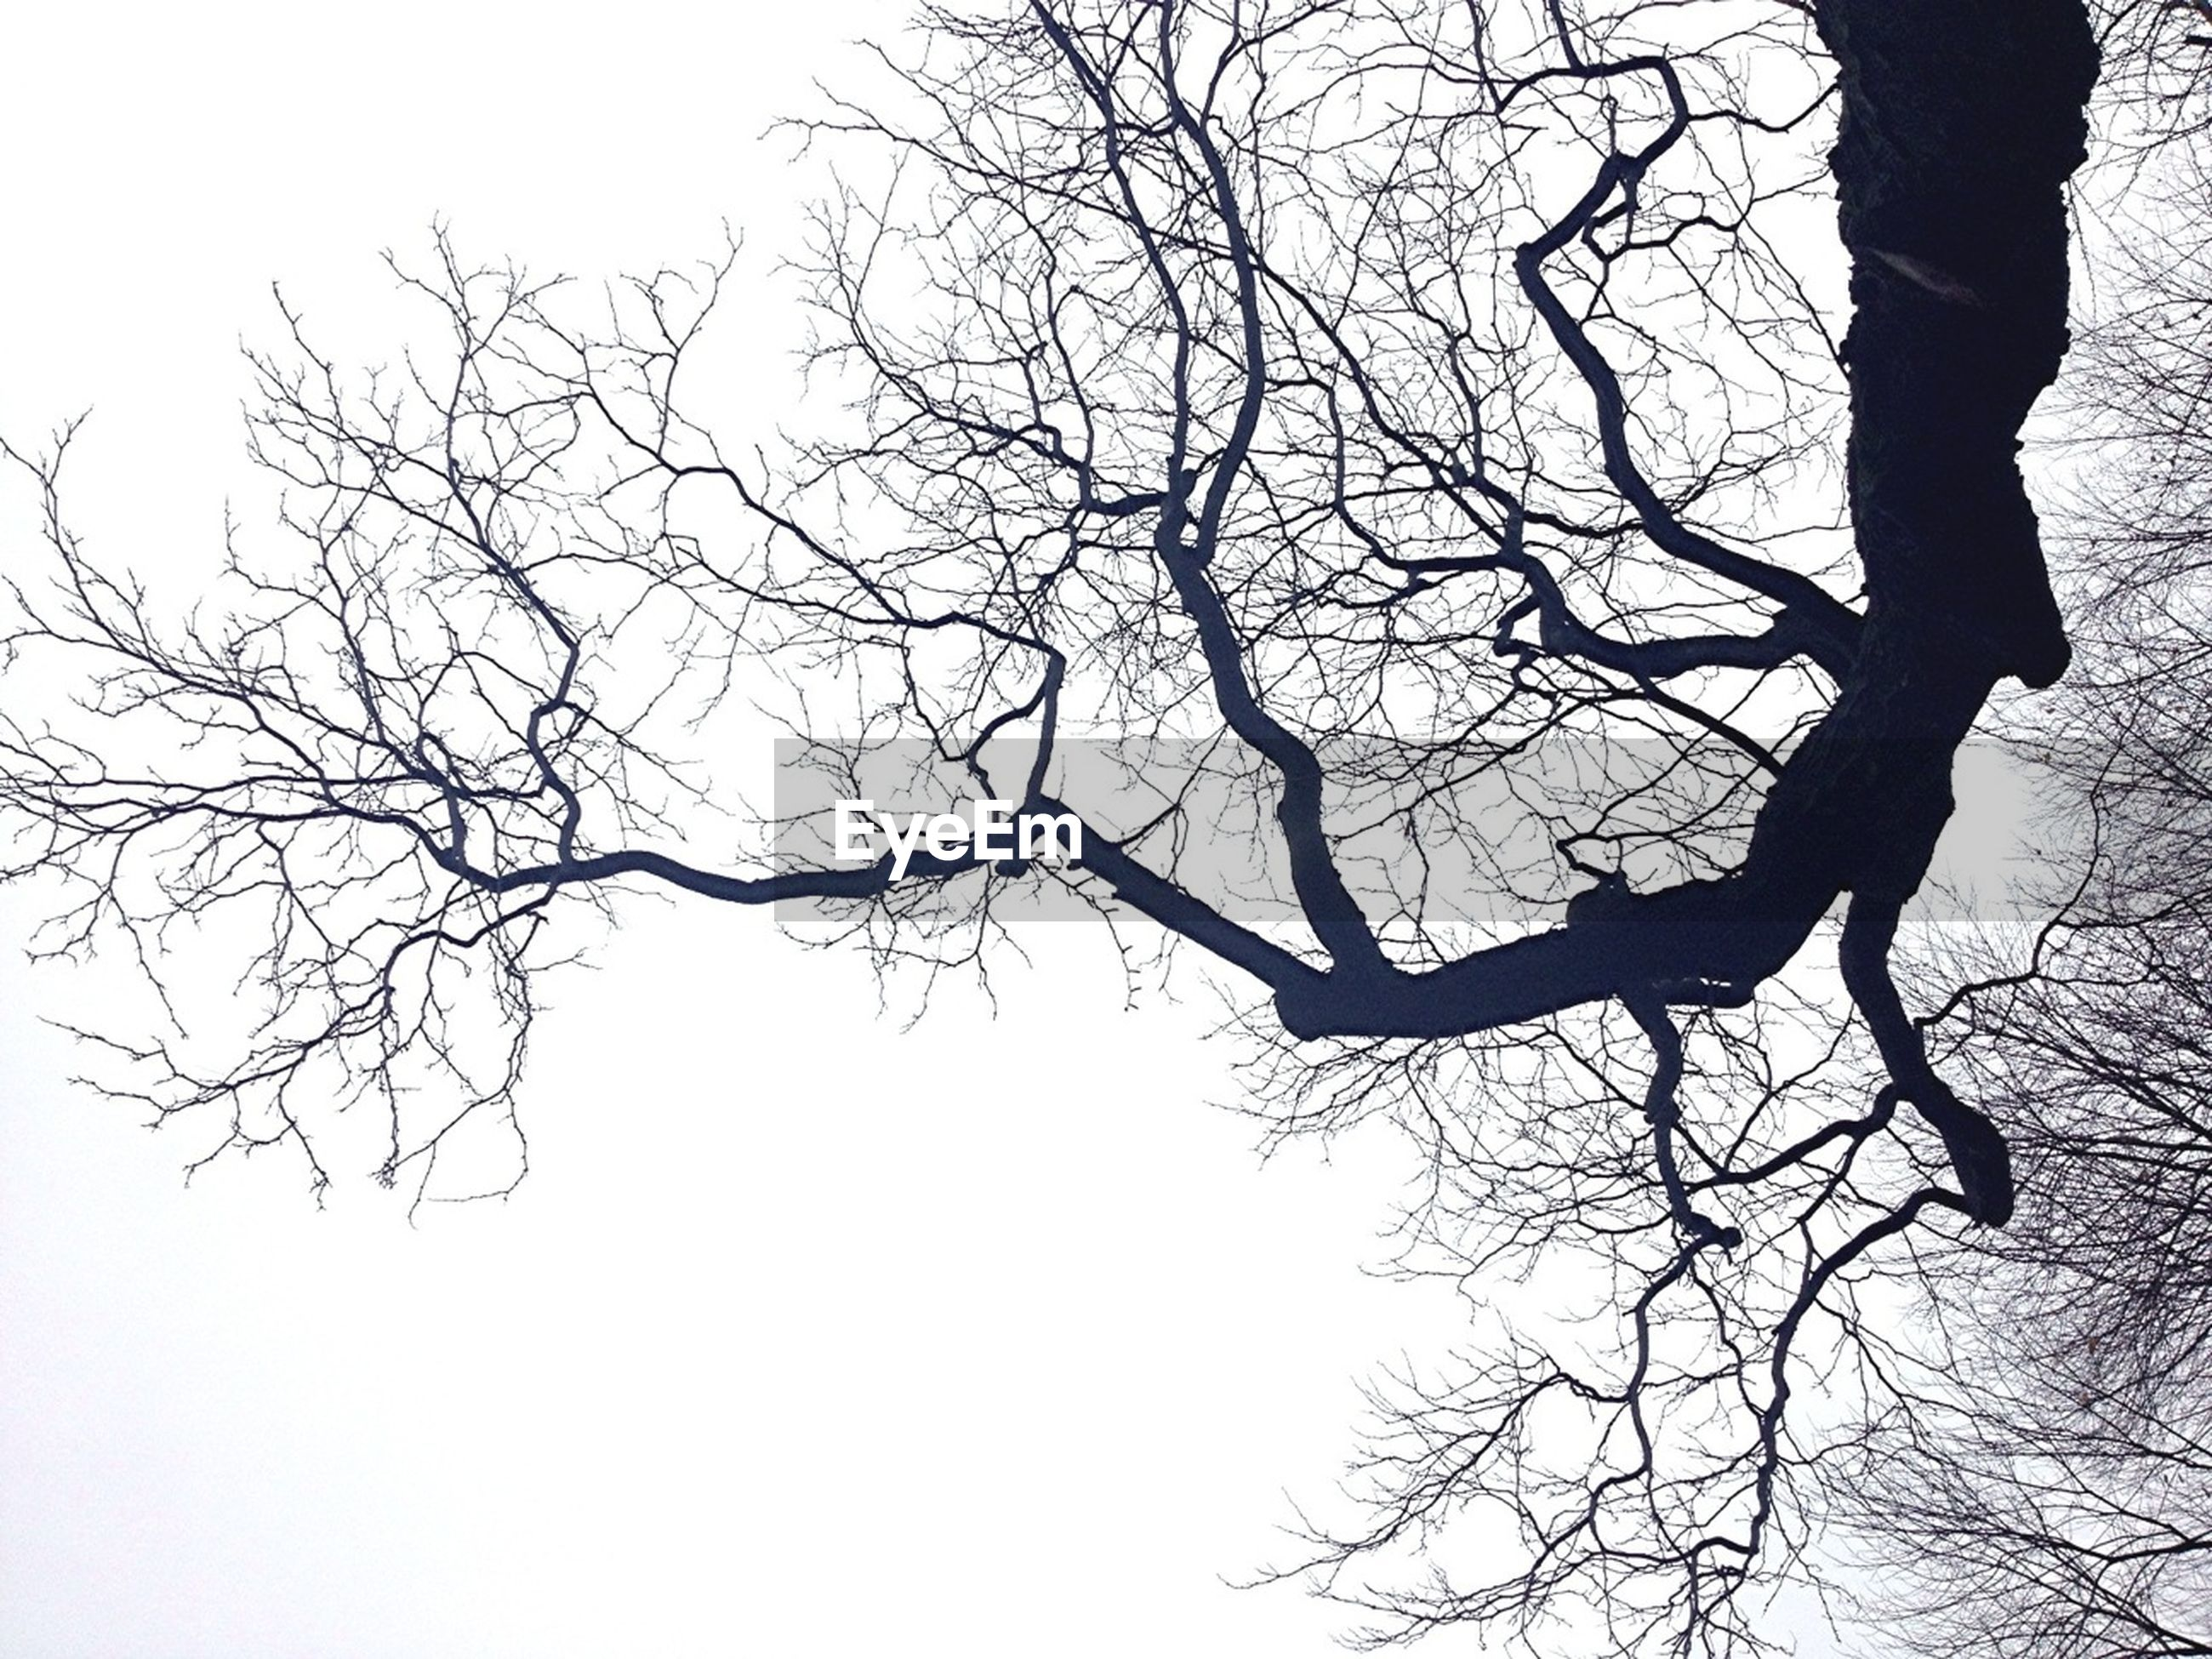 bare tree, branch, tree, low angle view, clear sky, nature, tranquility, tree trunk, silhouette, sky, outdoors, day, beauty in nature, no people, winter, season, scenics, growth, tranquil scene, weather